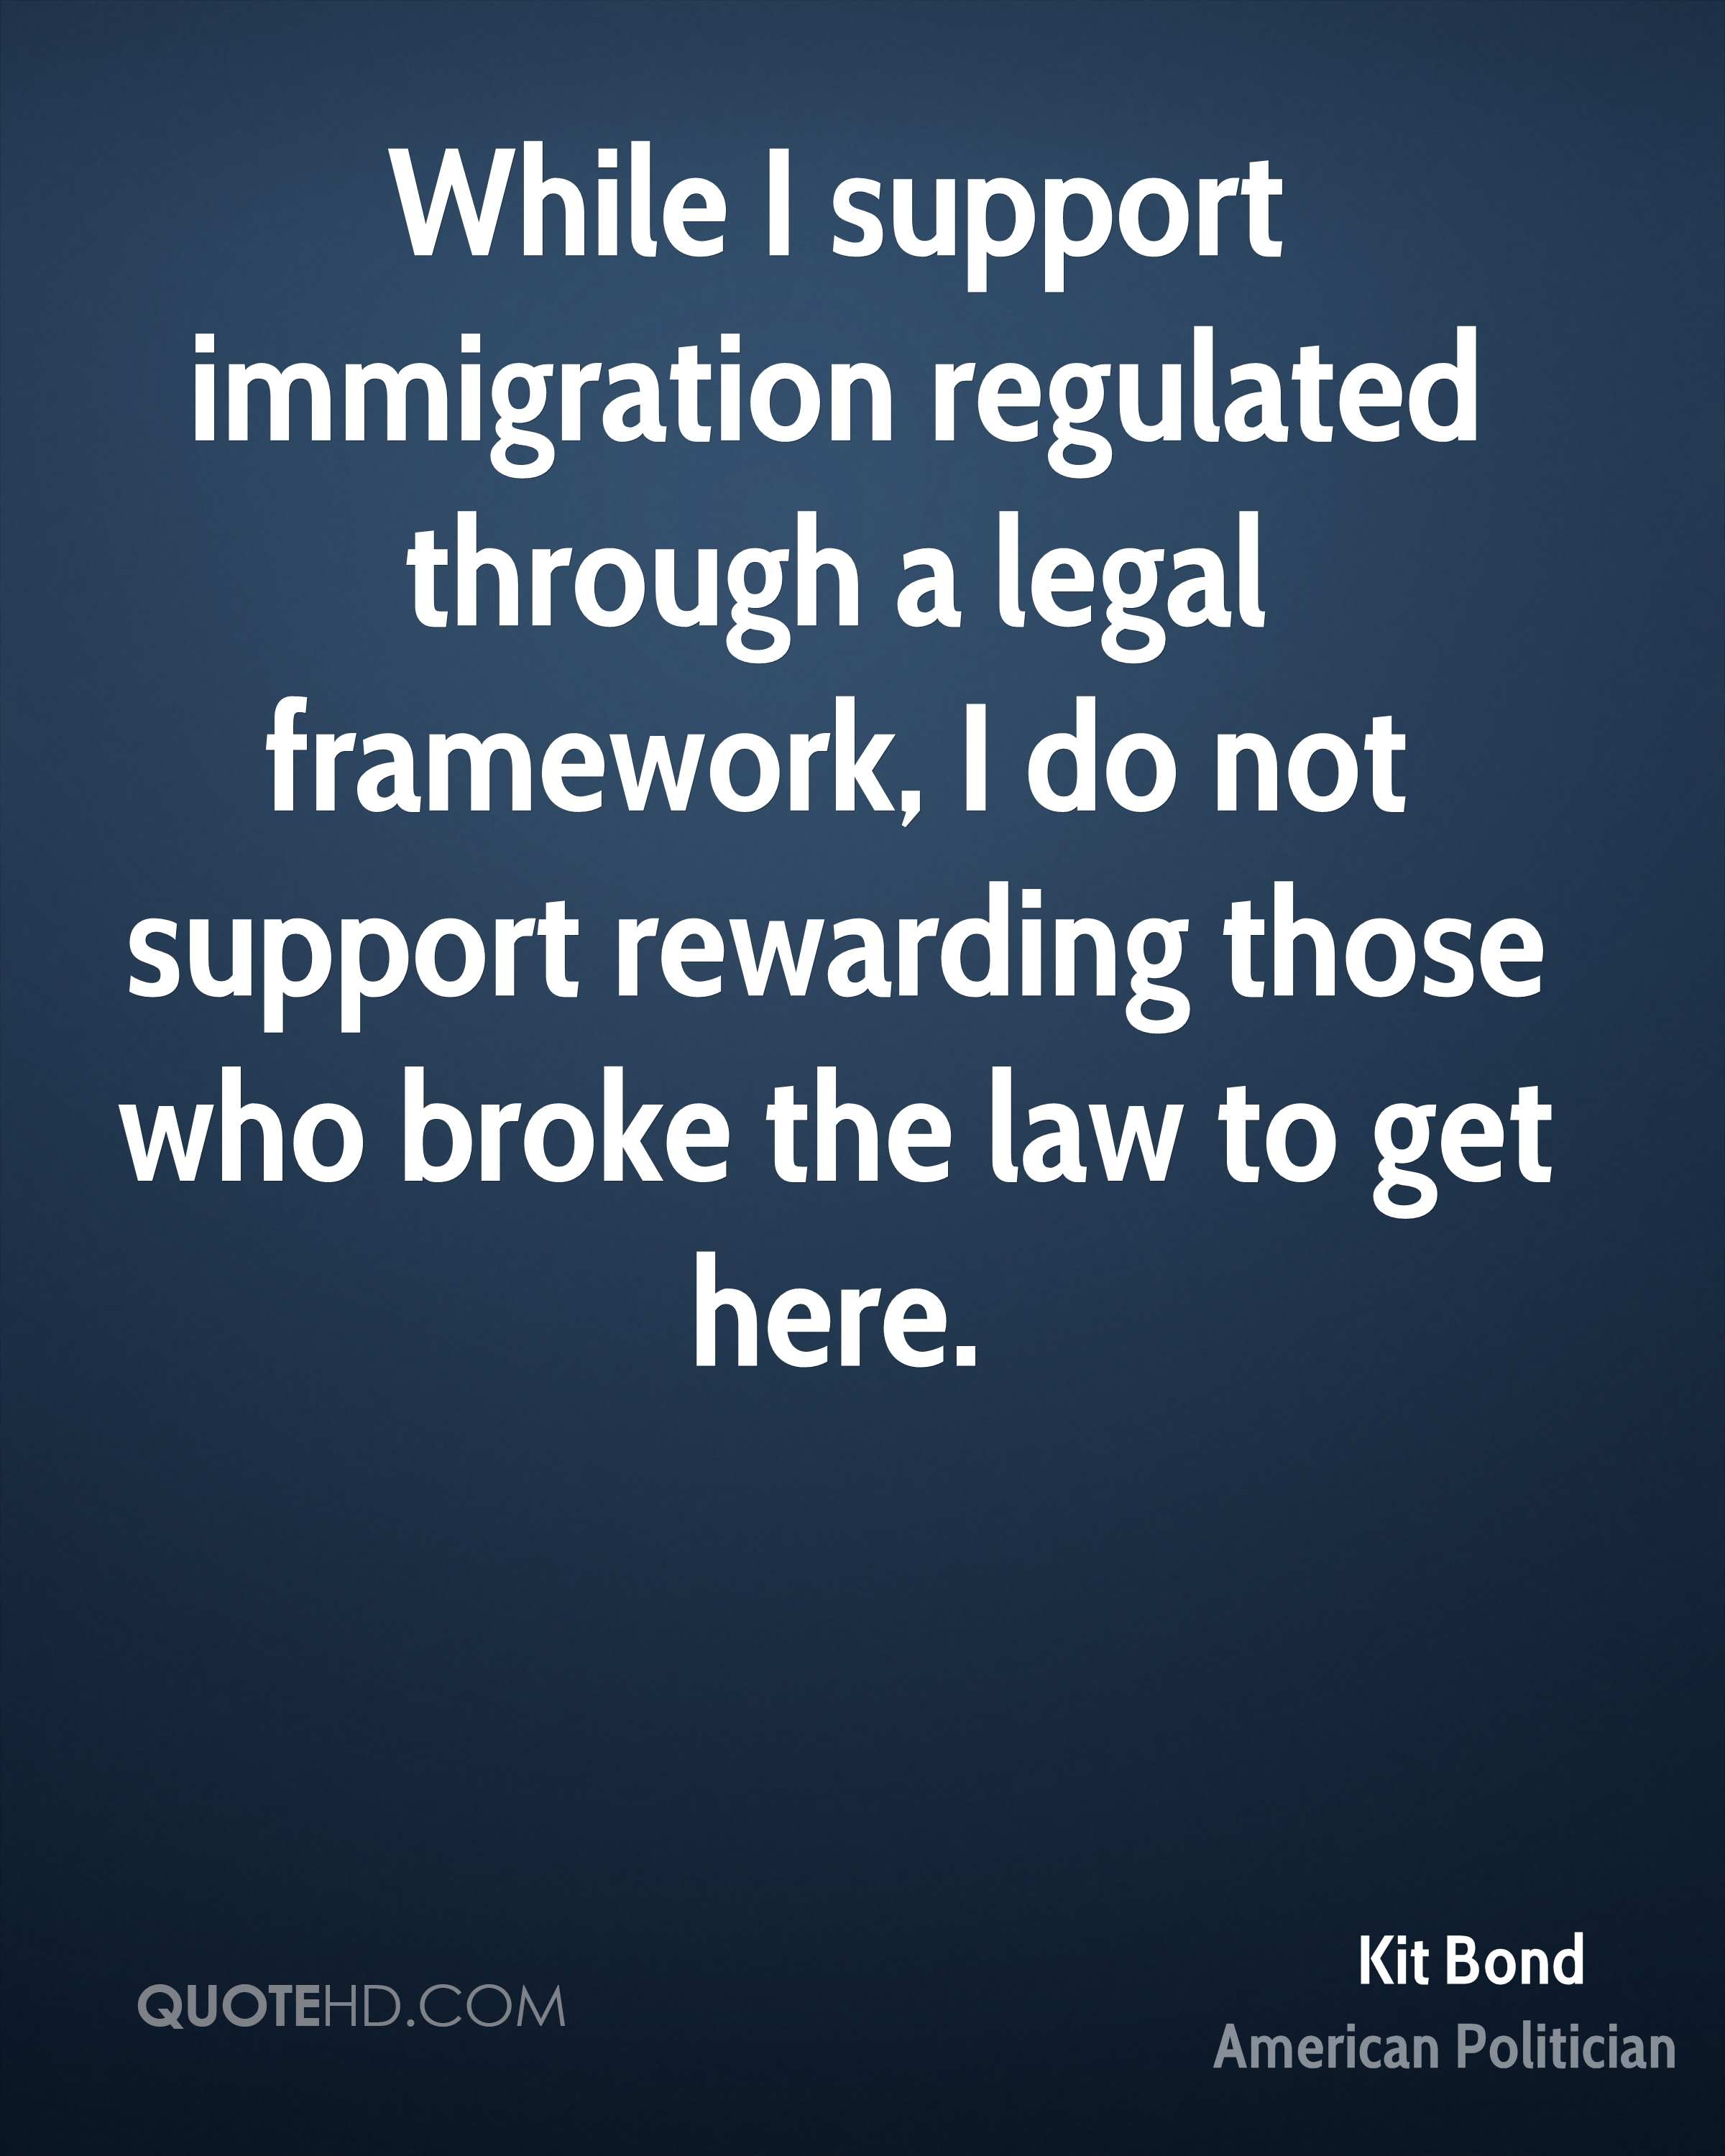 While I support immigration regulated through a legal framework, I do not support rewarding those who broke the law to get here.